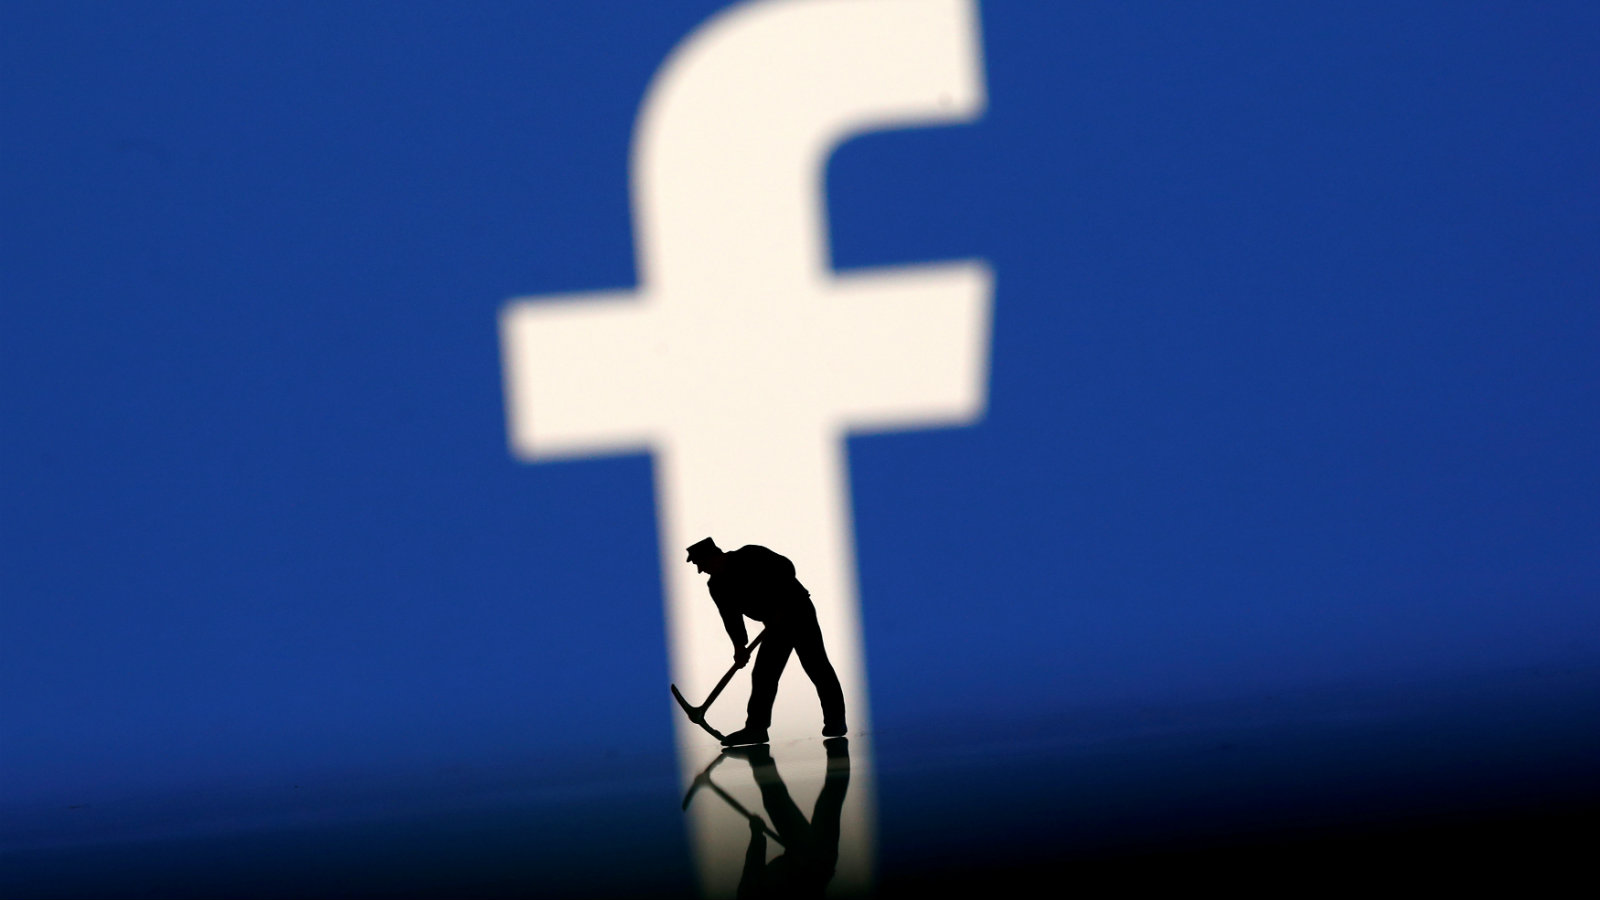 A figurine is seen in front of the Facebook logo in this illustration taken, March 20, 2018. /File Photo